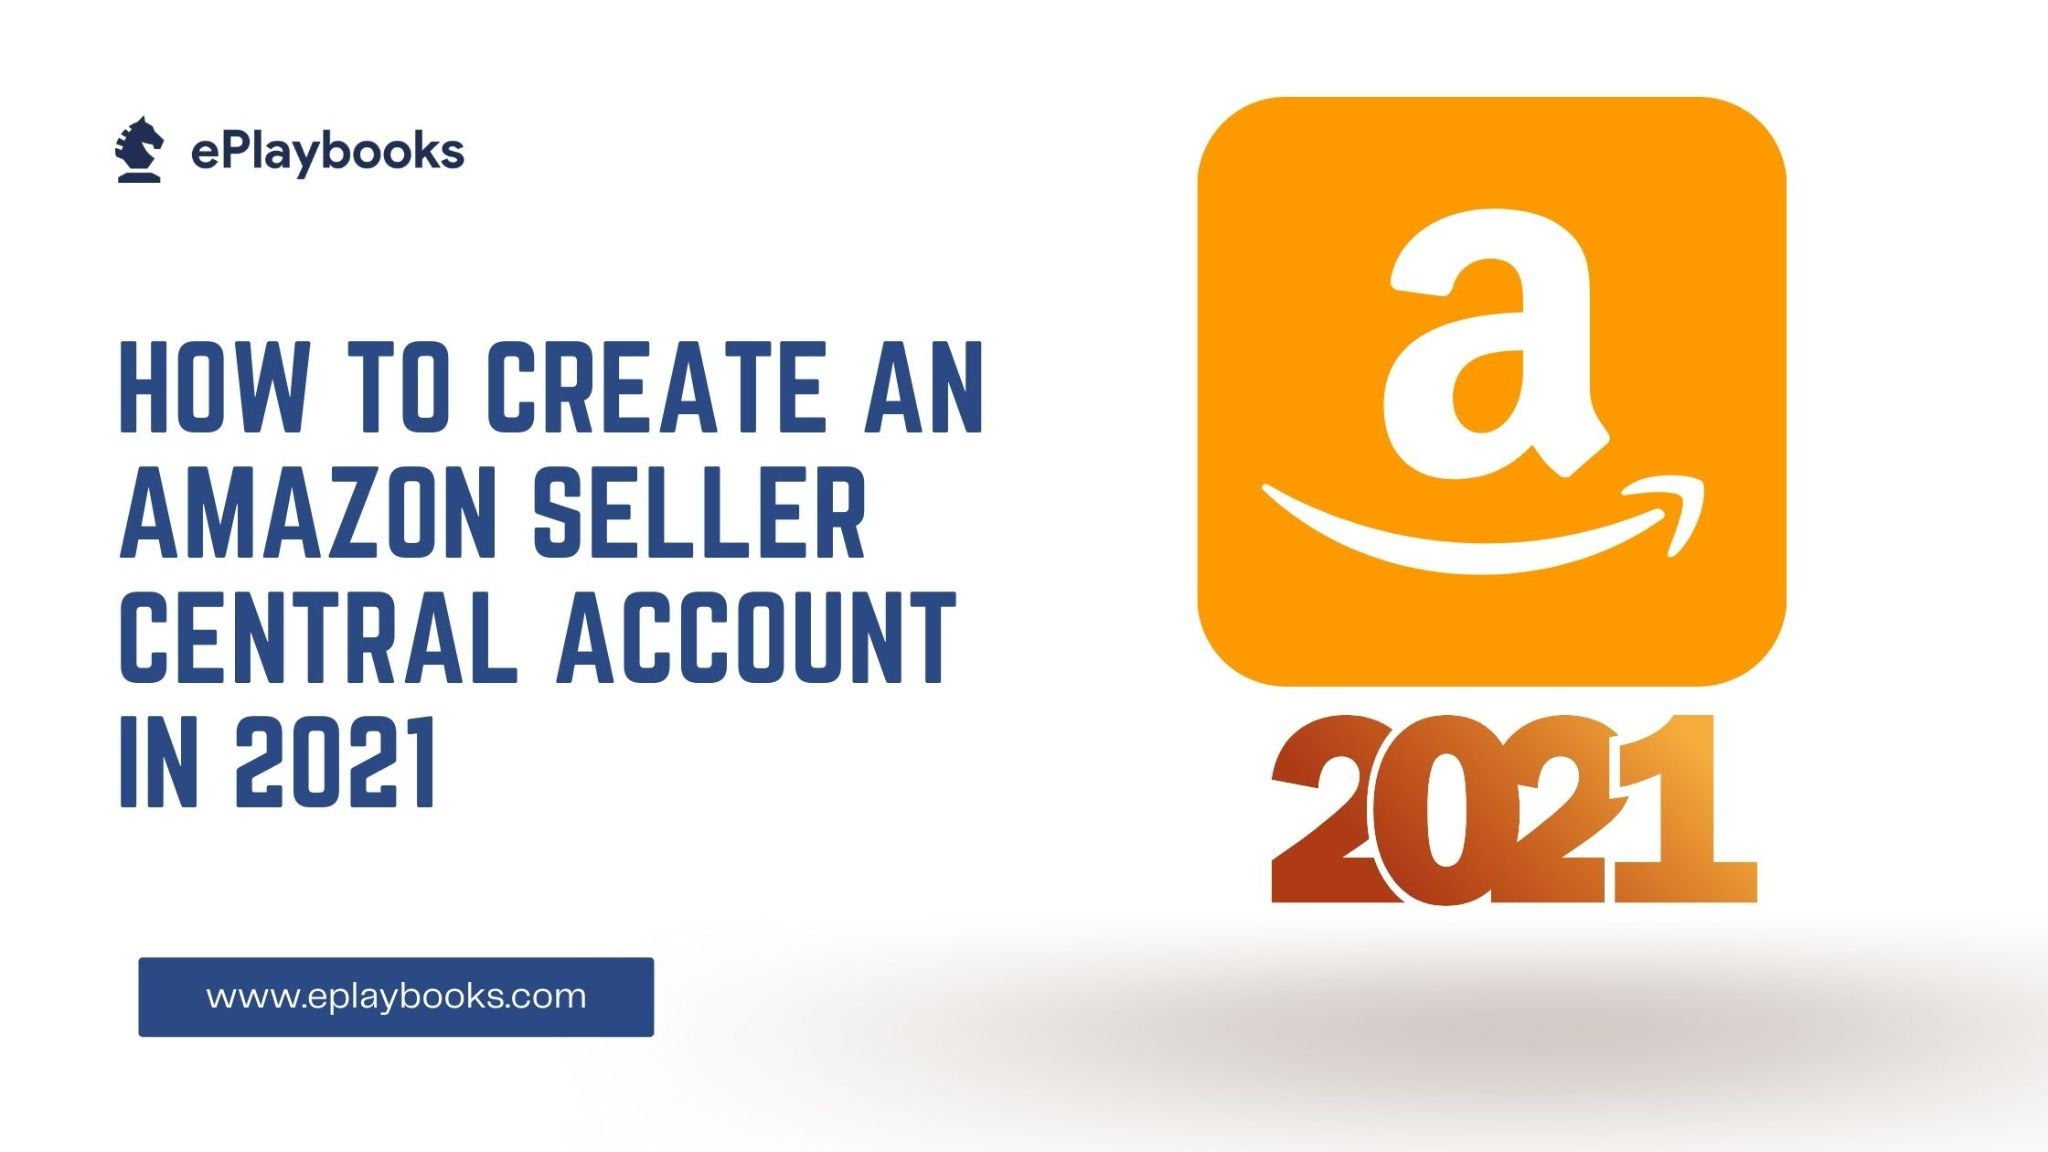 How to create an Amazon Seller Central account in 2021